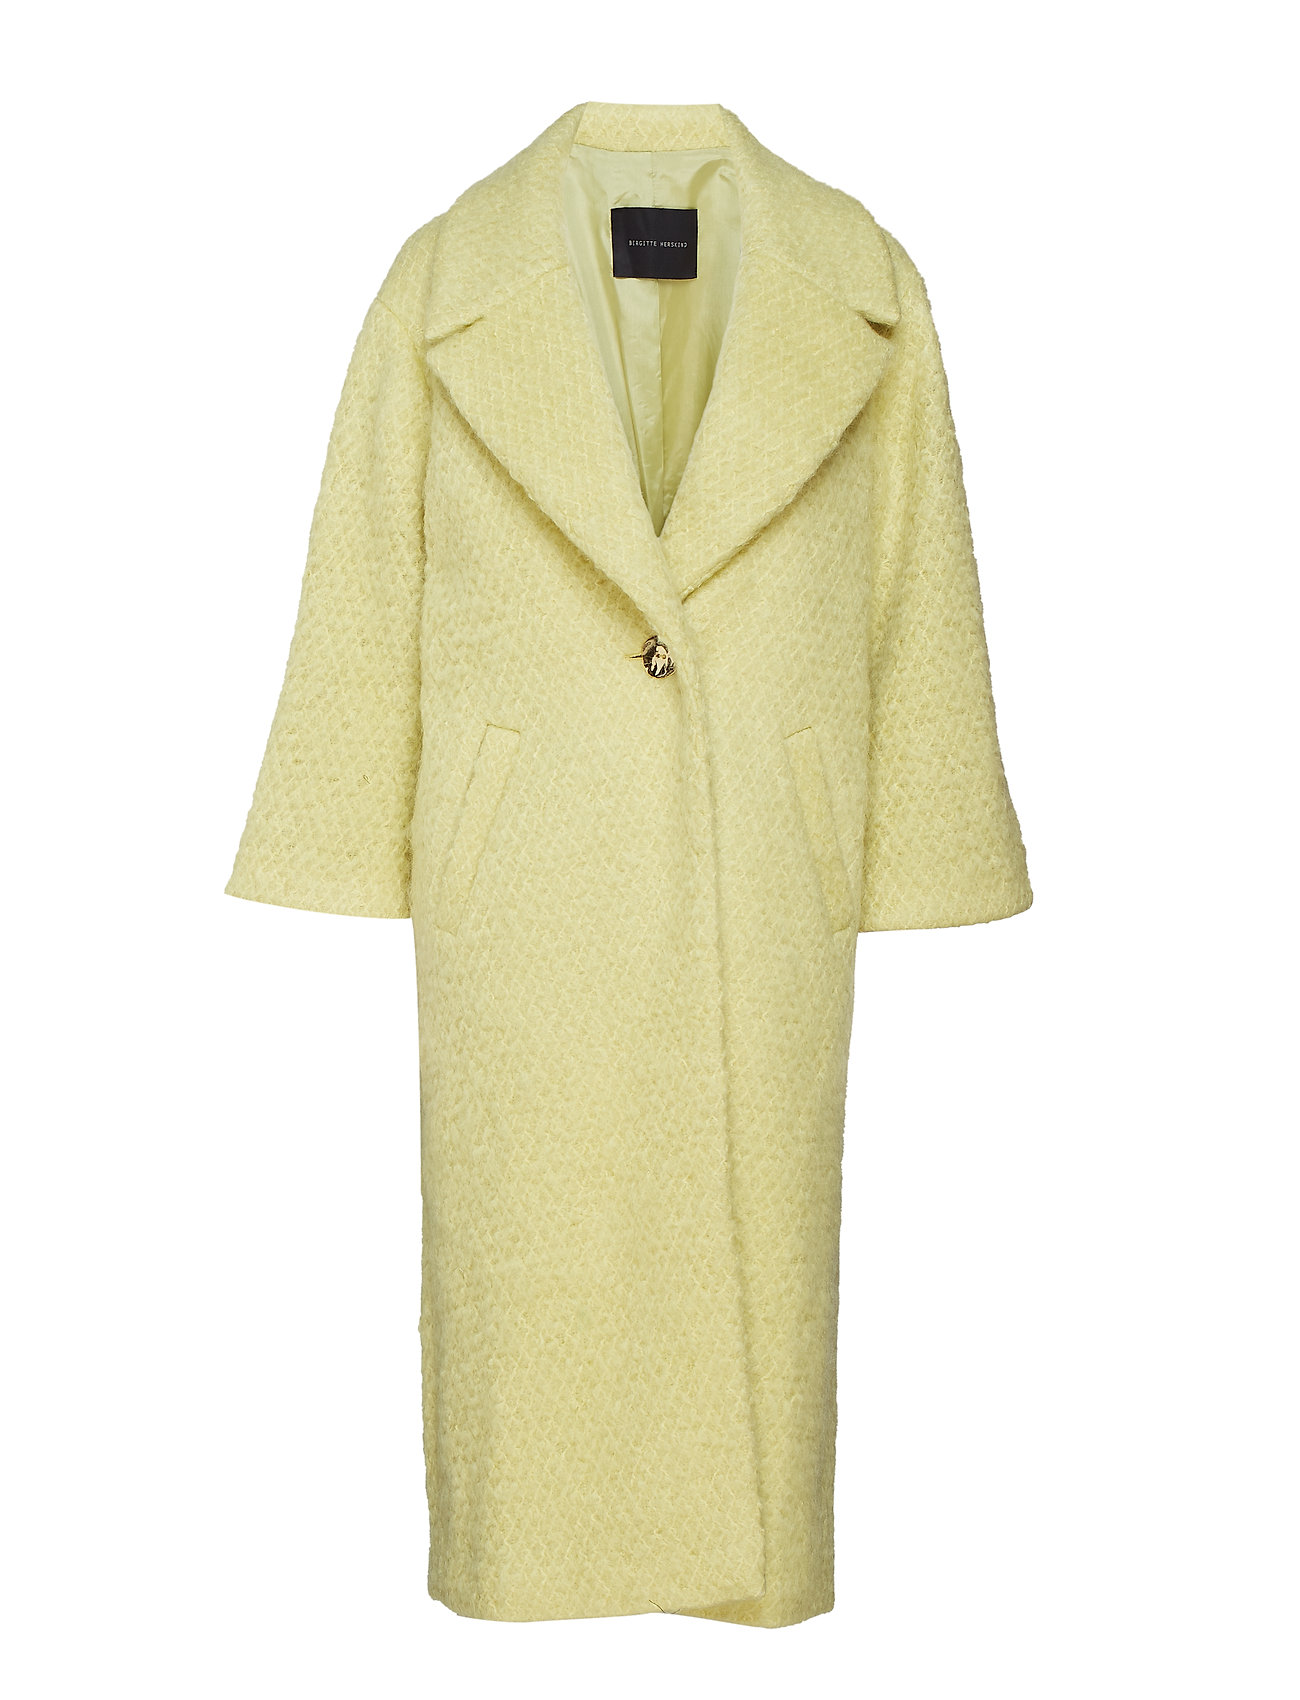 Birgitte Herskind Gemma Jacket - LIME YELLOW